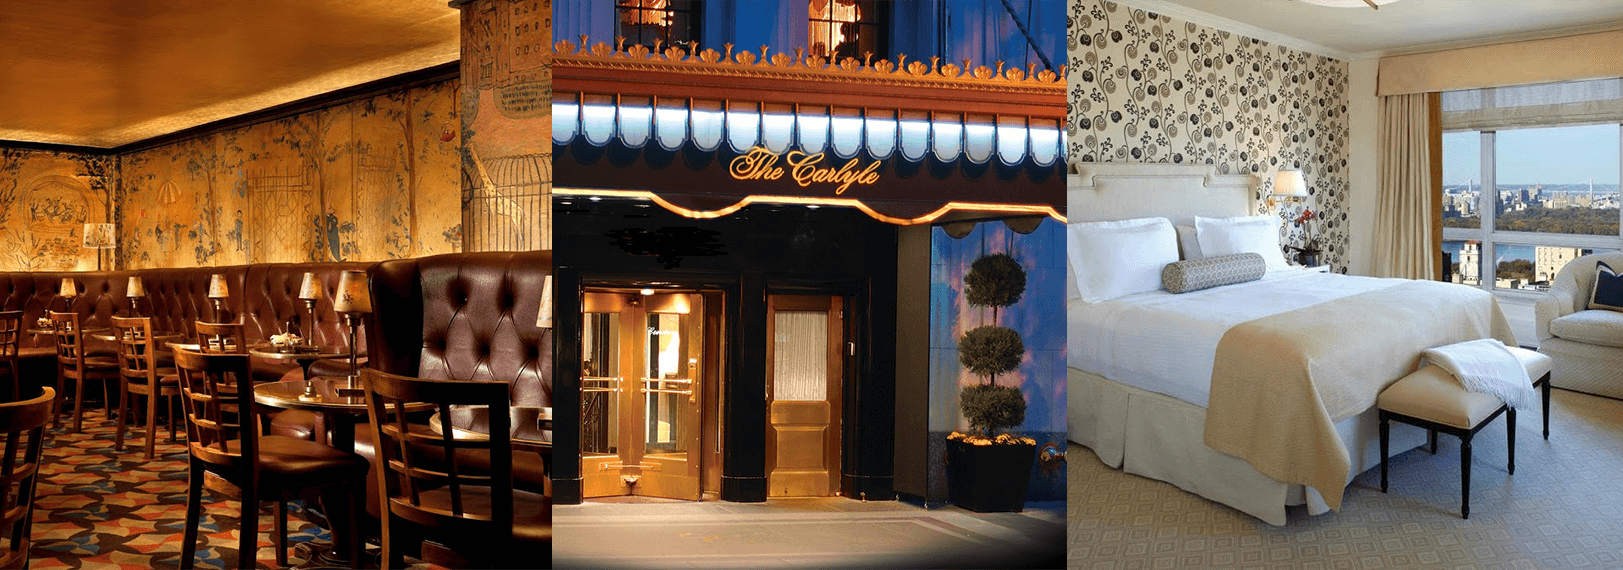 The Carlyle New York City